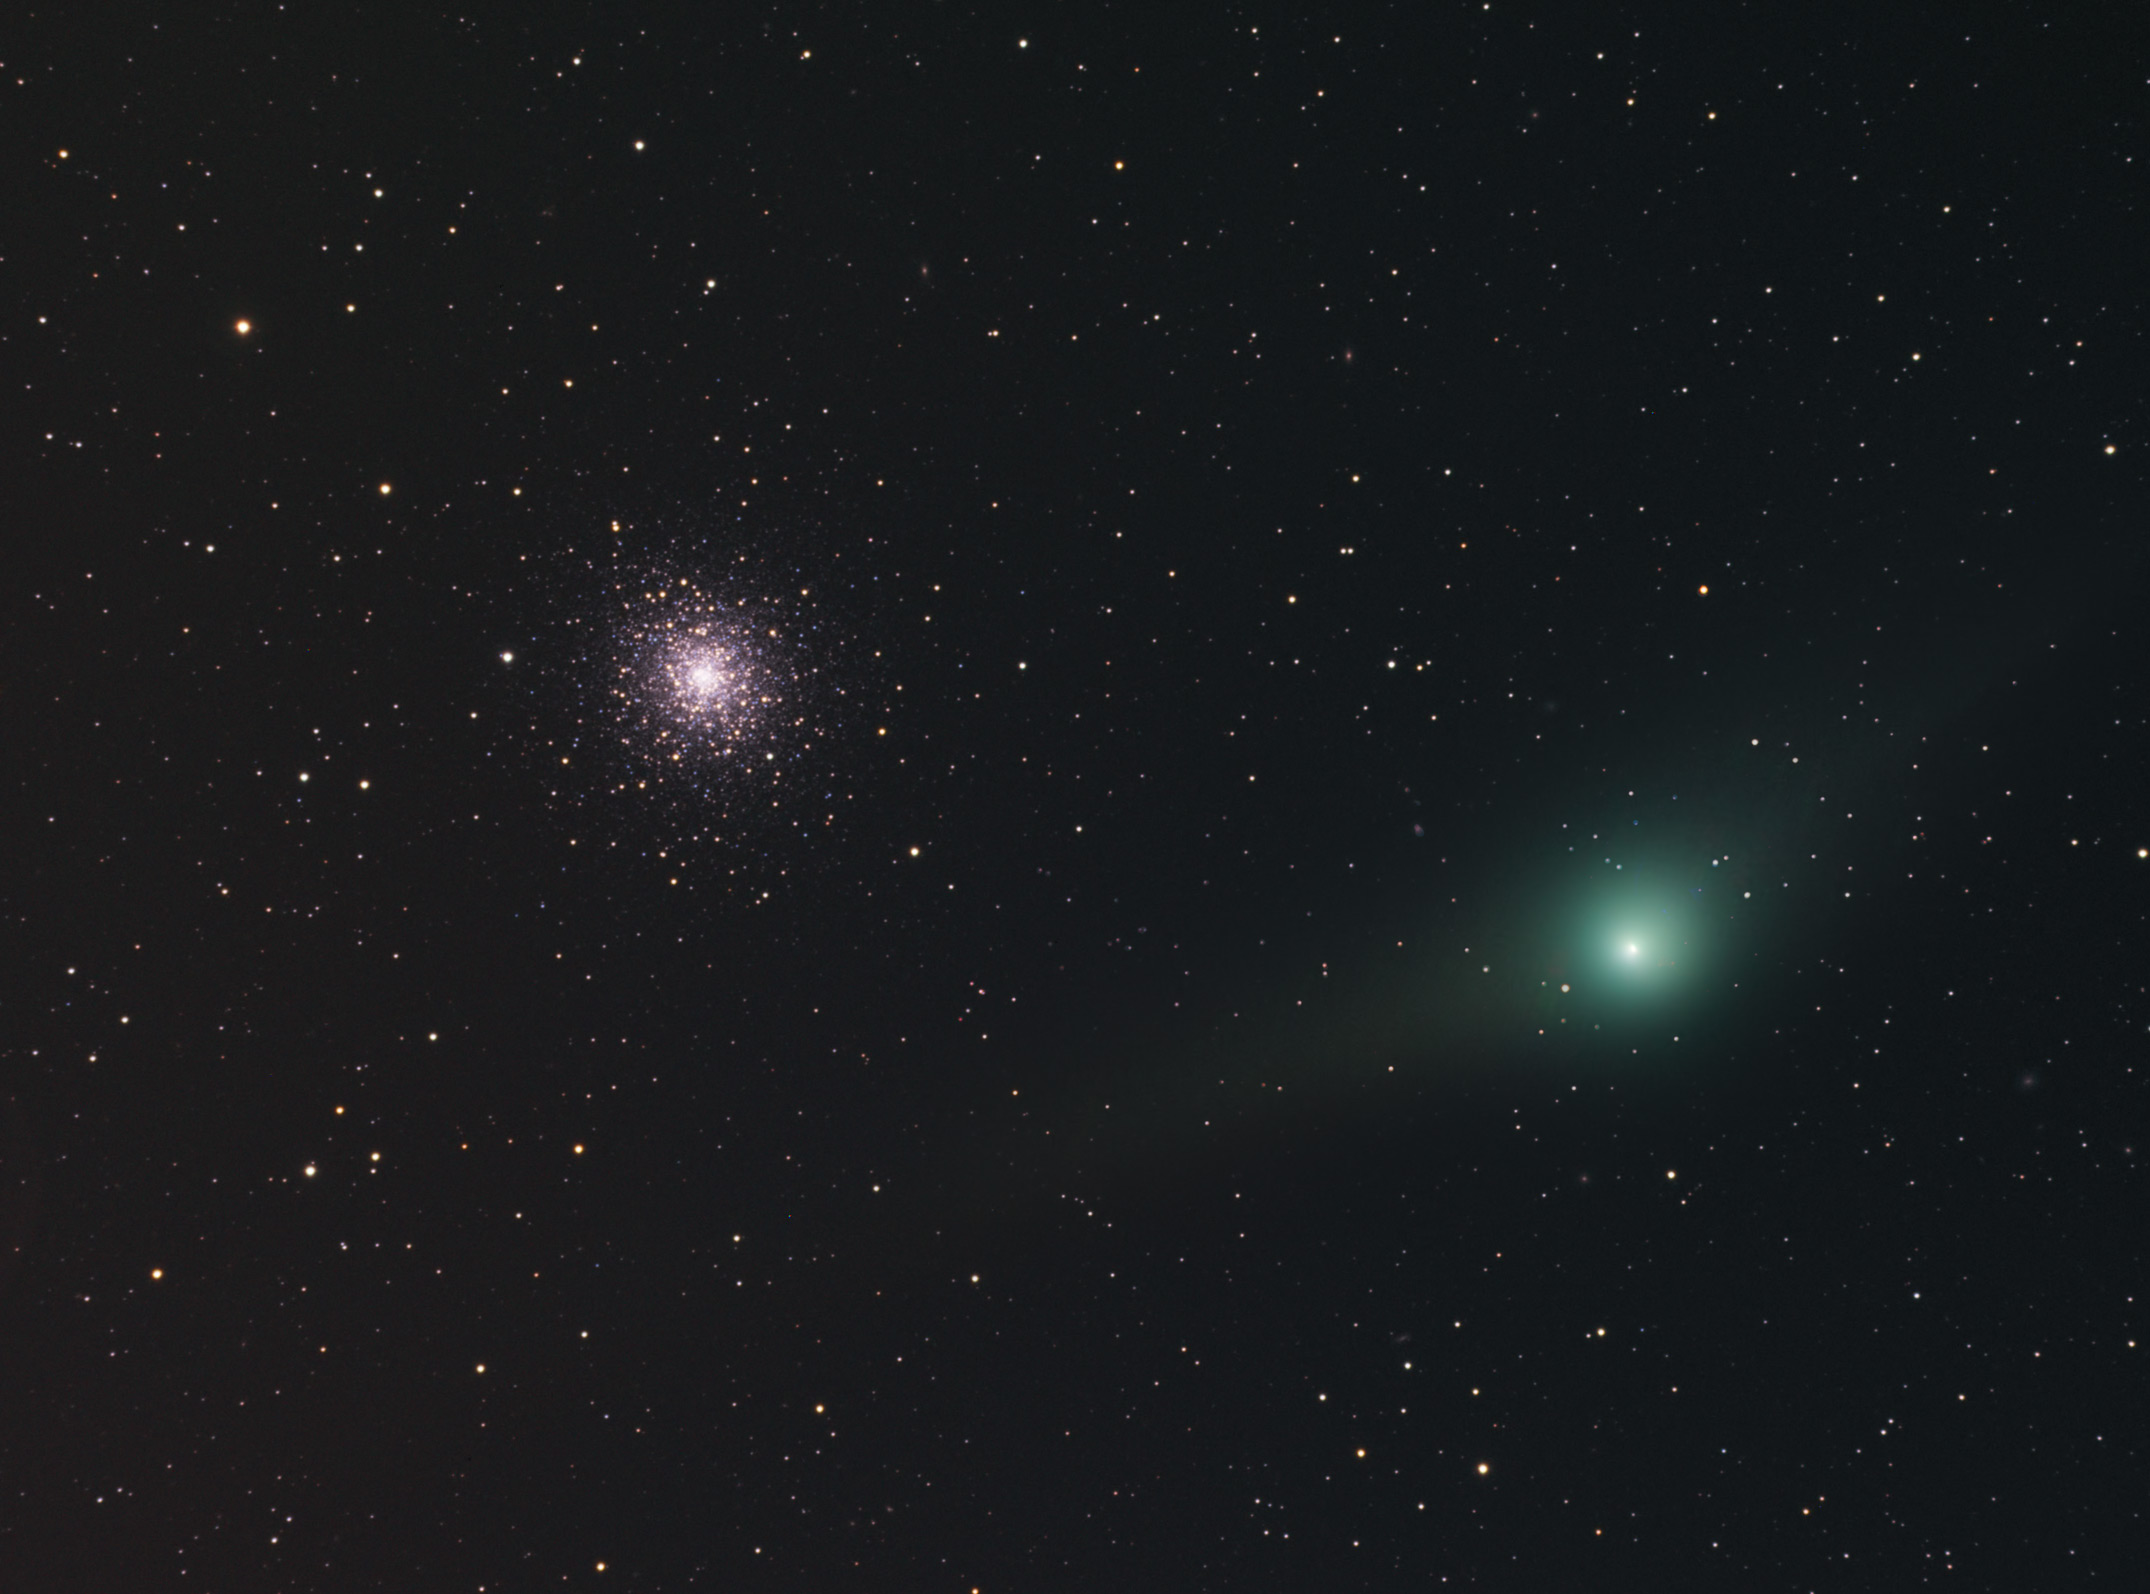 'Two-Tailed Comet' Cruises By Star Cluster in Skywatching Photo